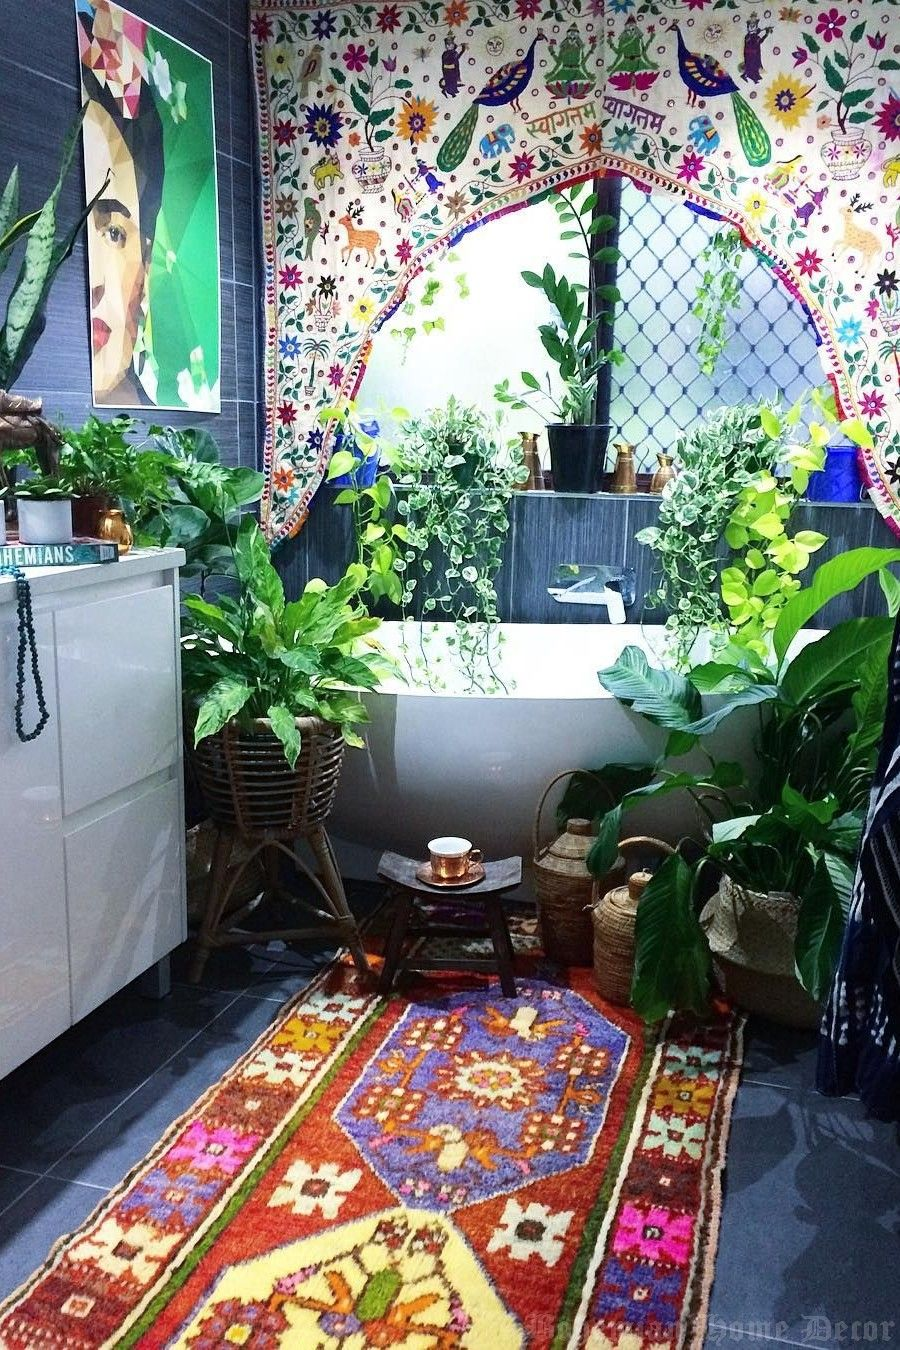 The World's Most Unusual Bohemian Home Decor Oct 2020